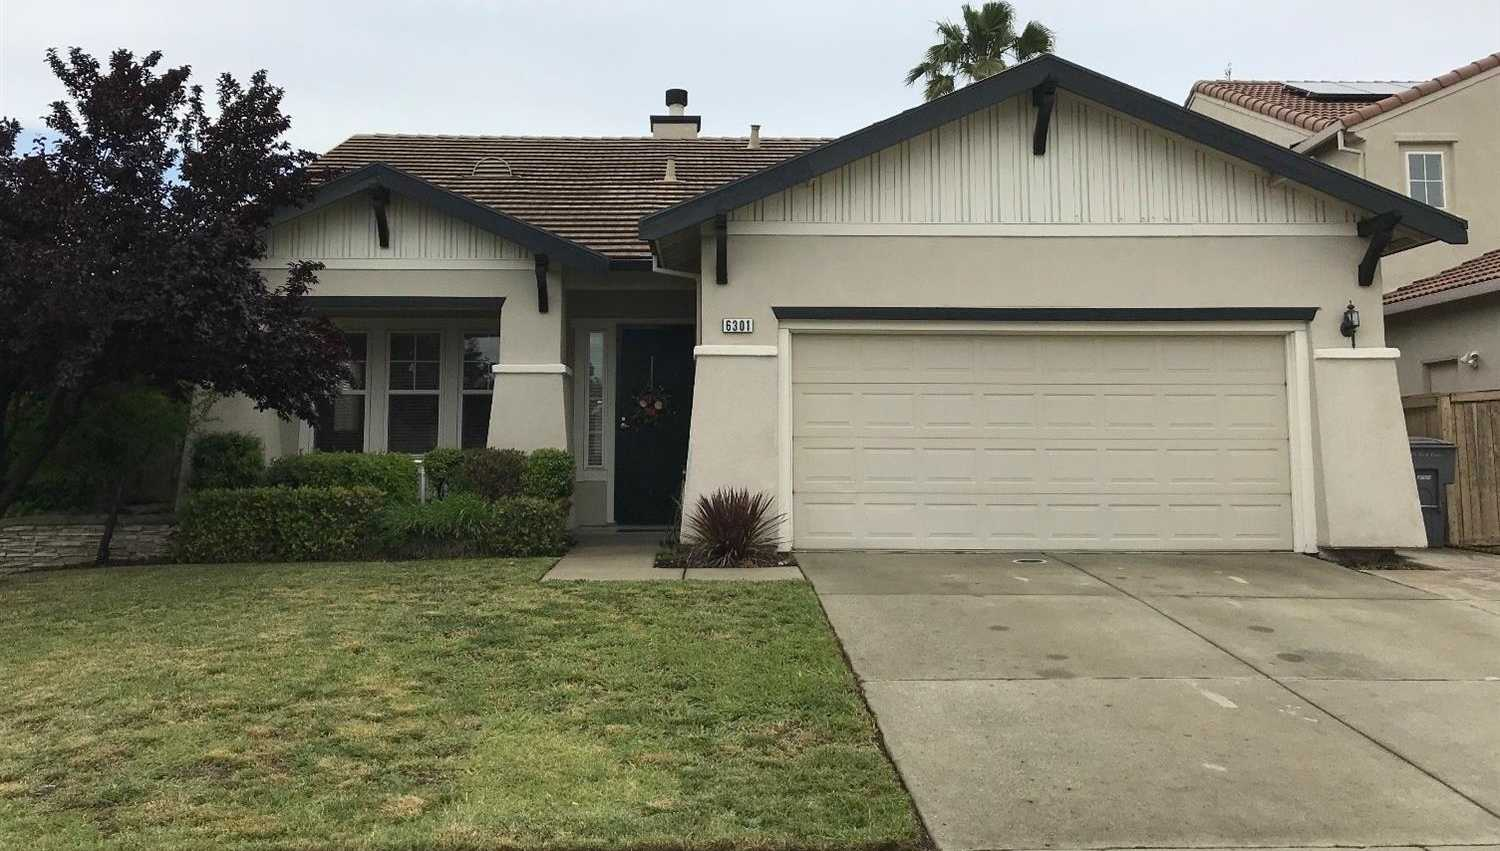 $417,000 - 3Br/2Ba -  for Sale in Sunset West, Rocklin